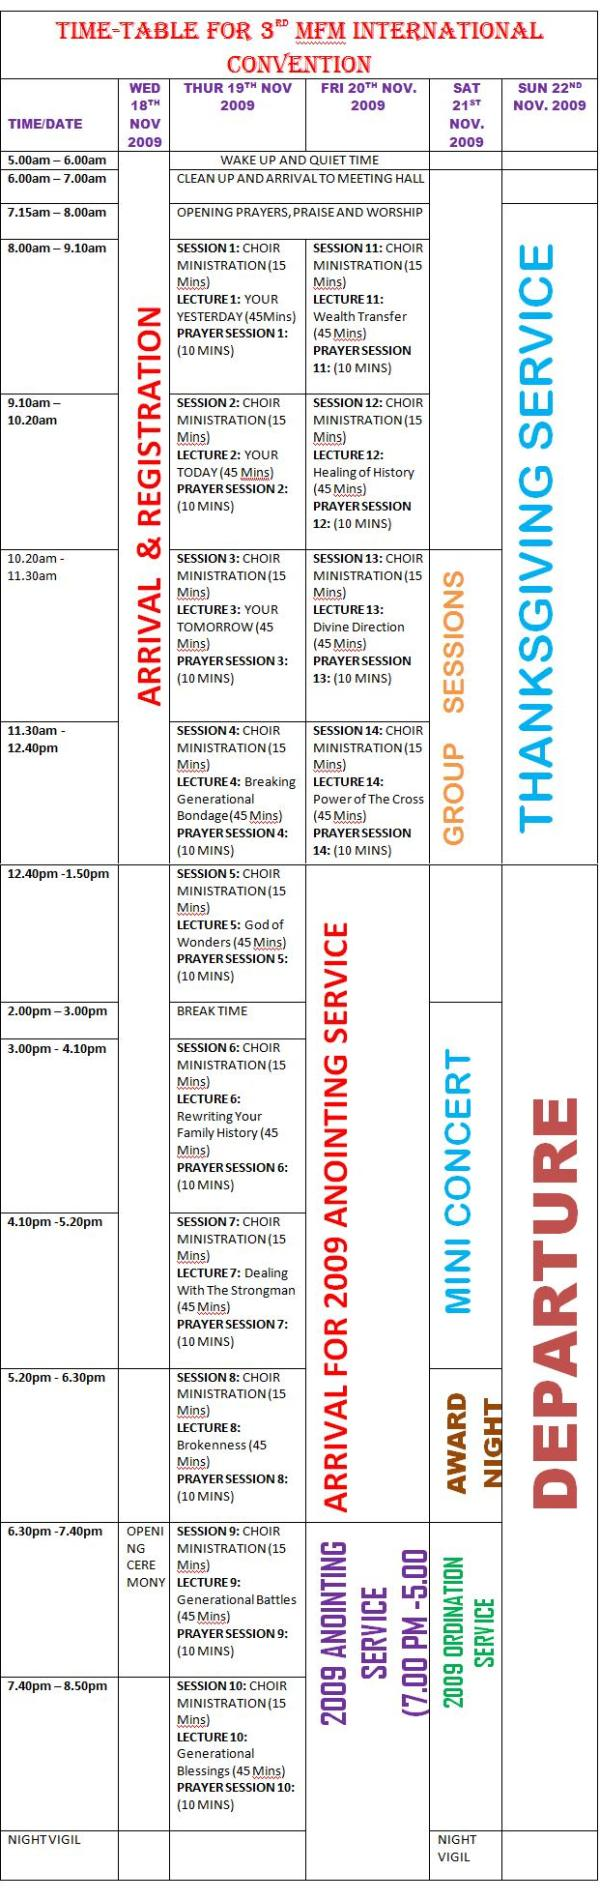 Time Table for 3rd MFM International Convention